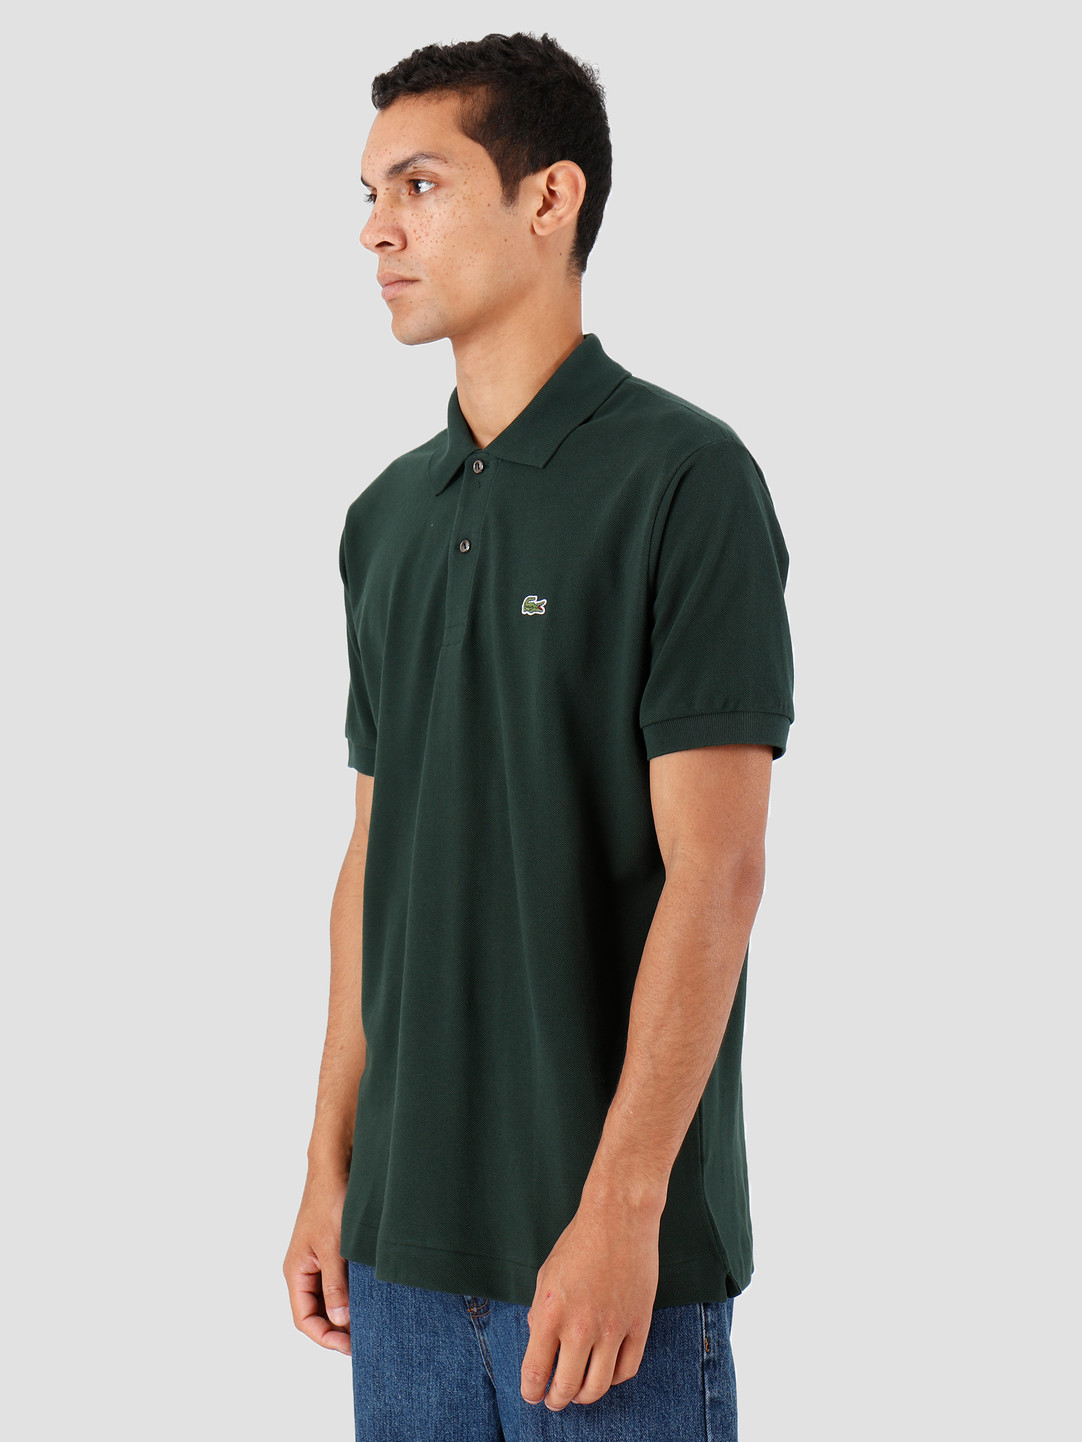 Lacoste Lacoste 1HP1 Shortsleeve Best Polo Sinople L1212-93